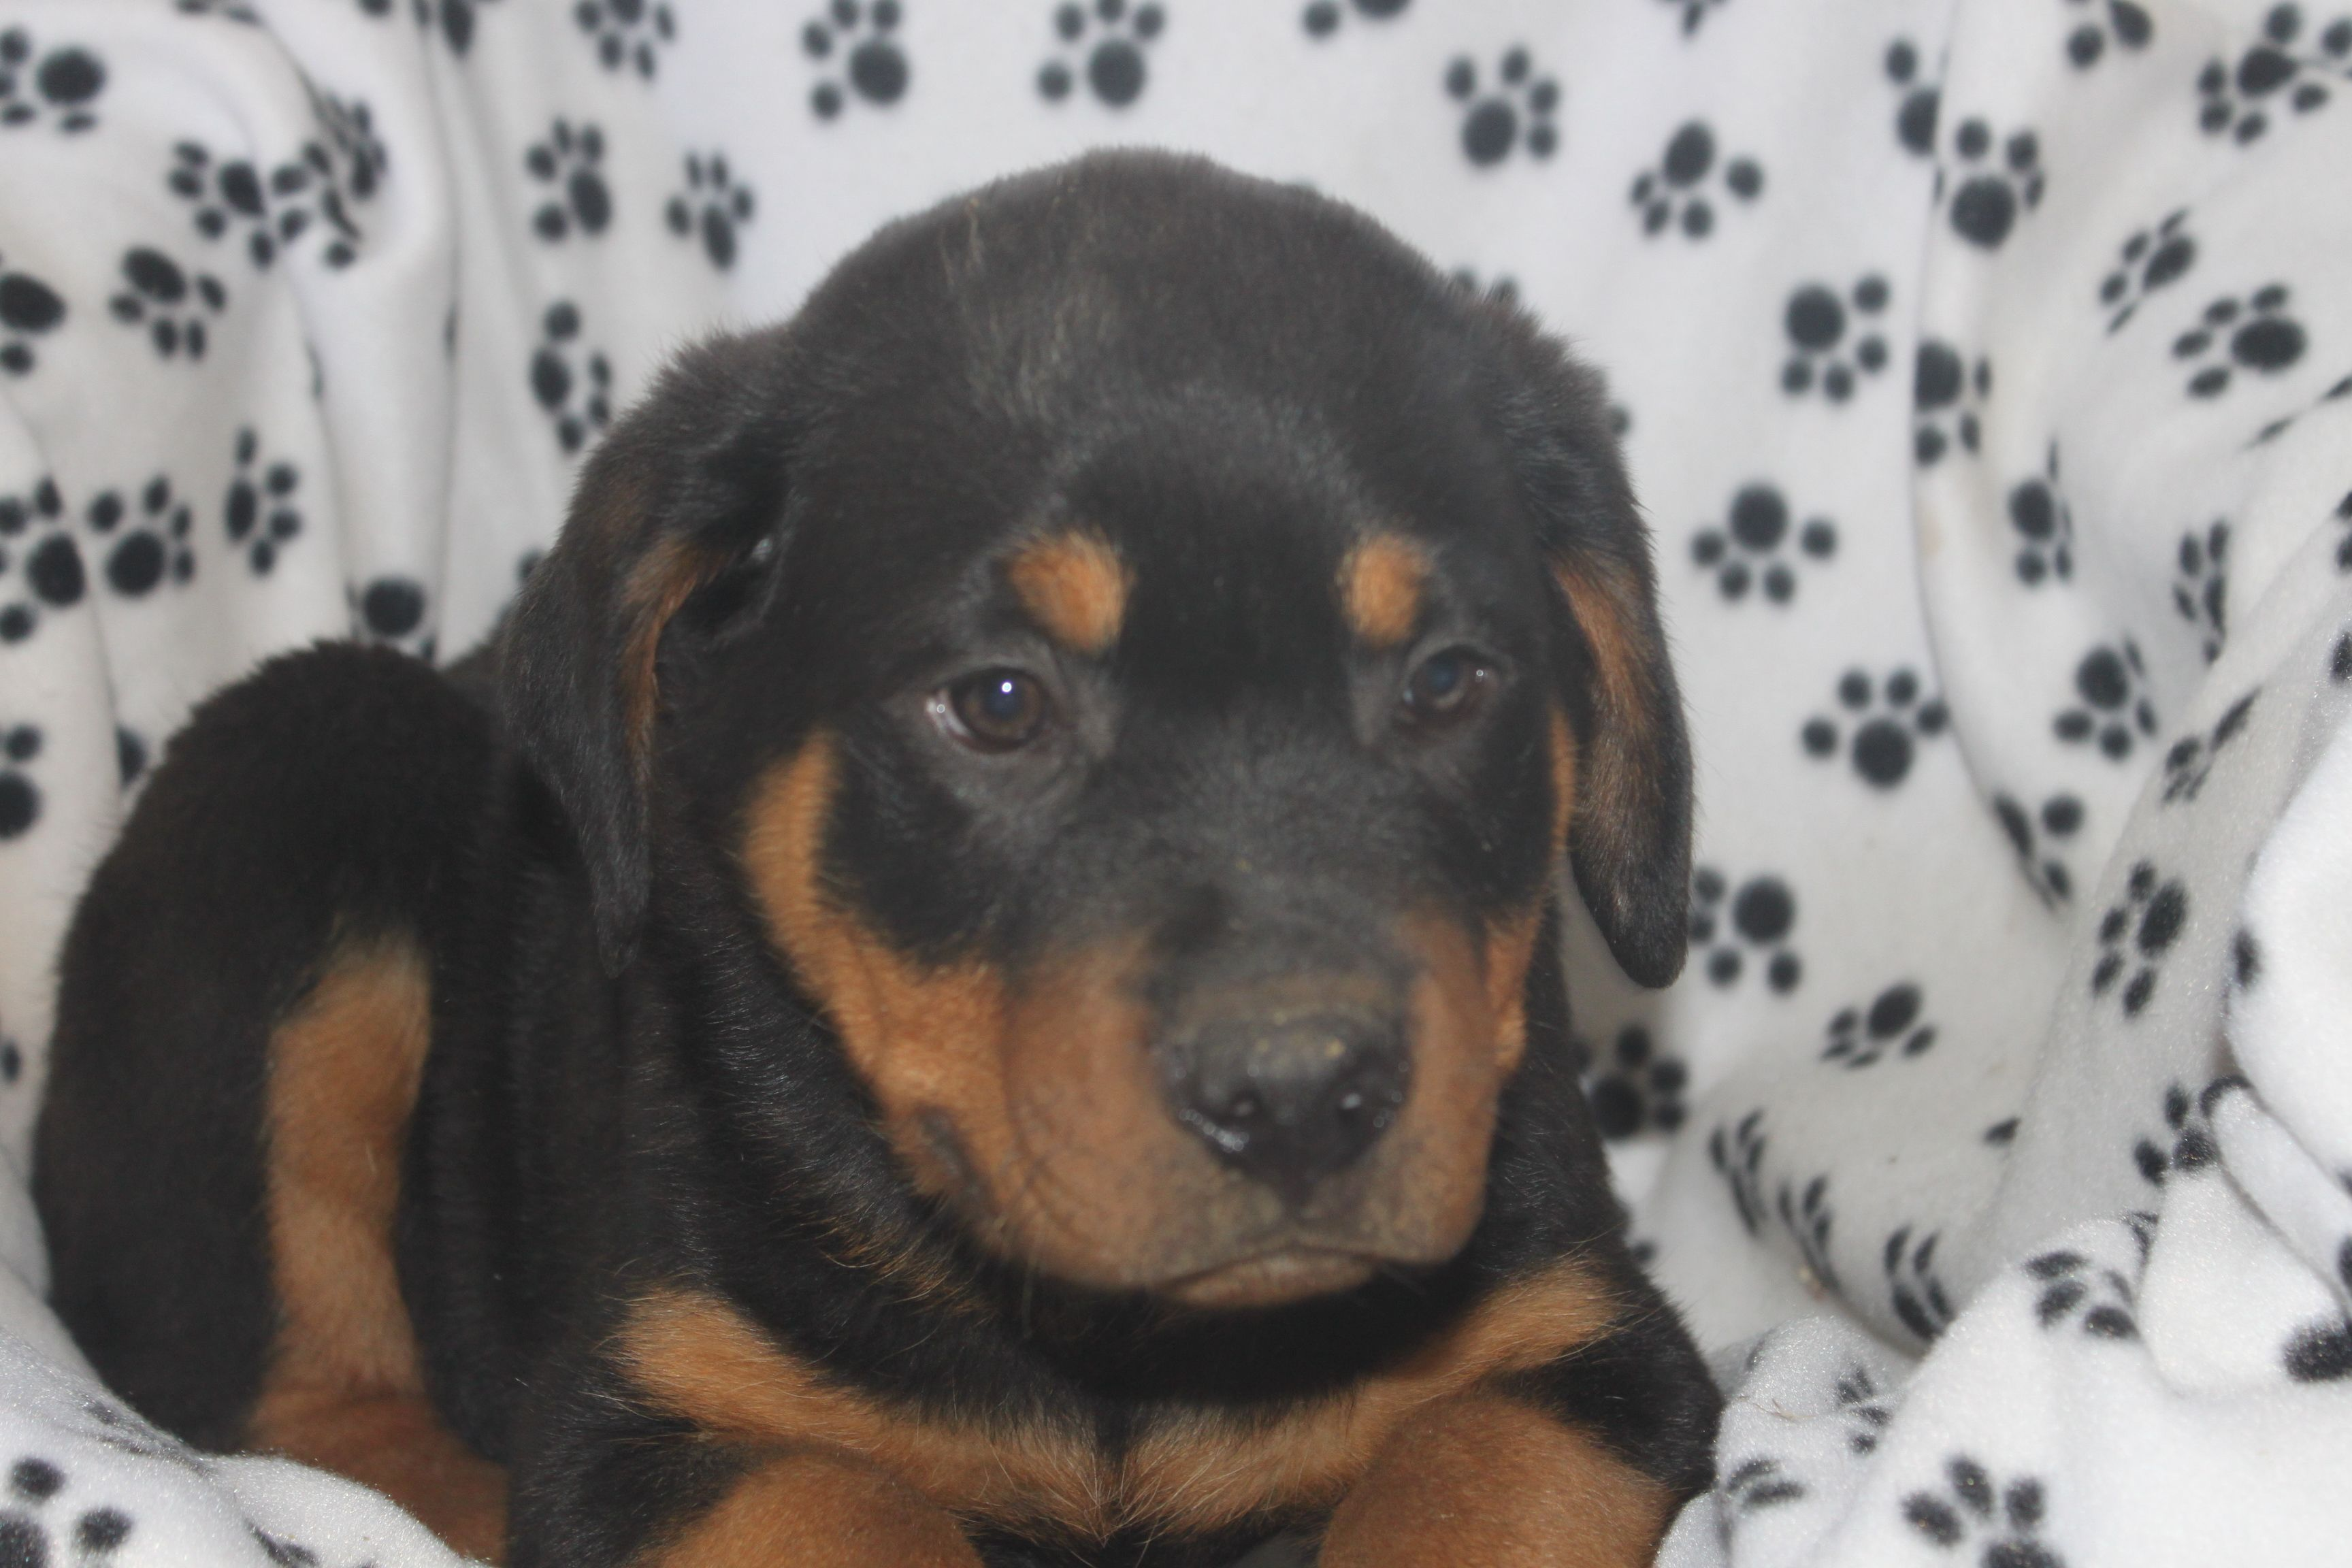 Rottweiler Puppy This Is A 12 Week Old Rottweiler Puppy At Http